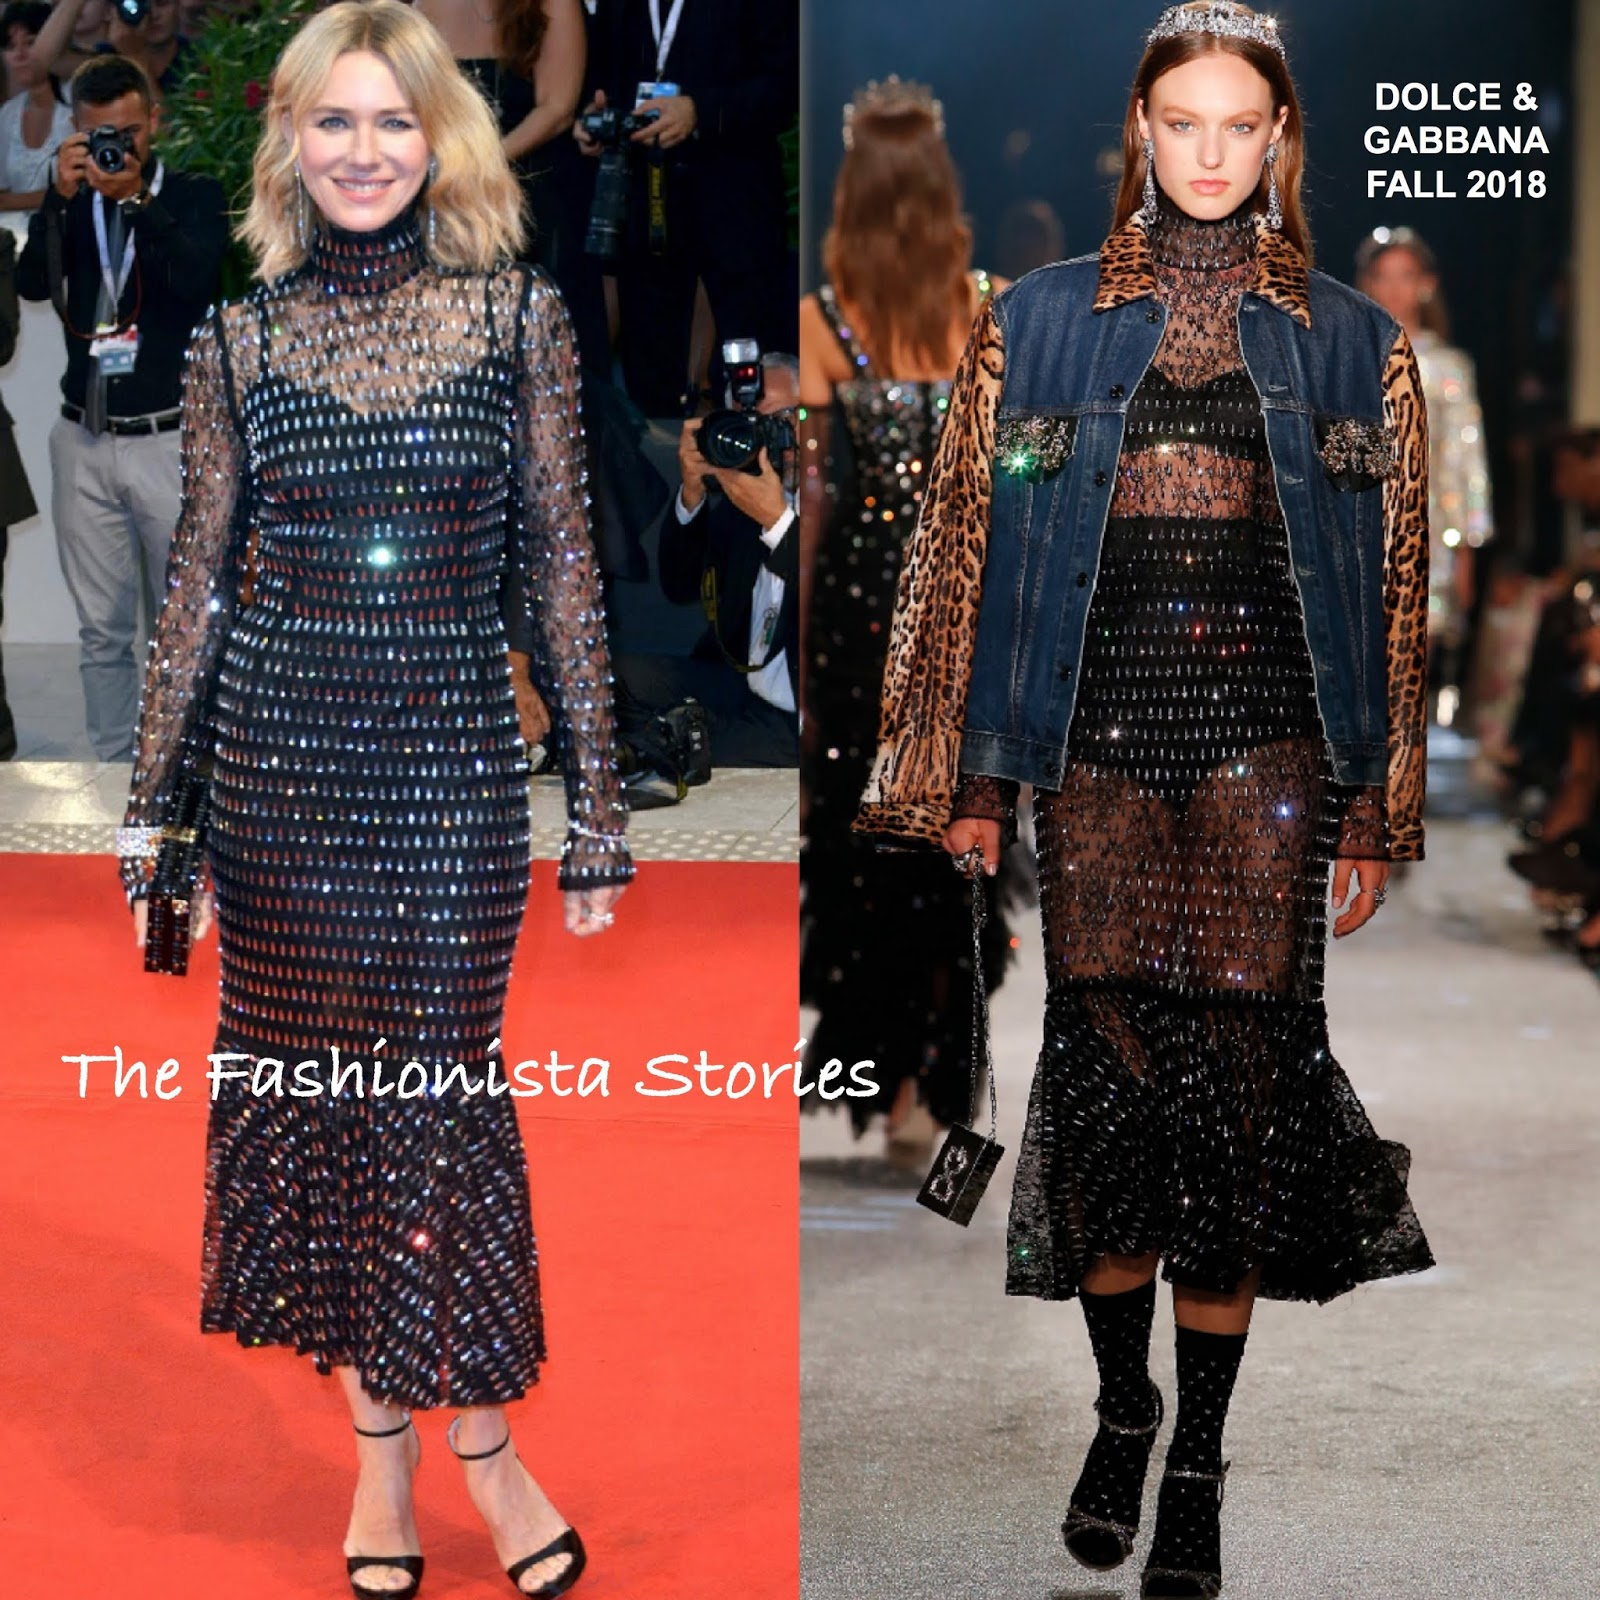 Naomi Watts In Dolce & Gabbana At The 'At Eternity's Gate